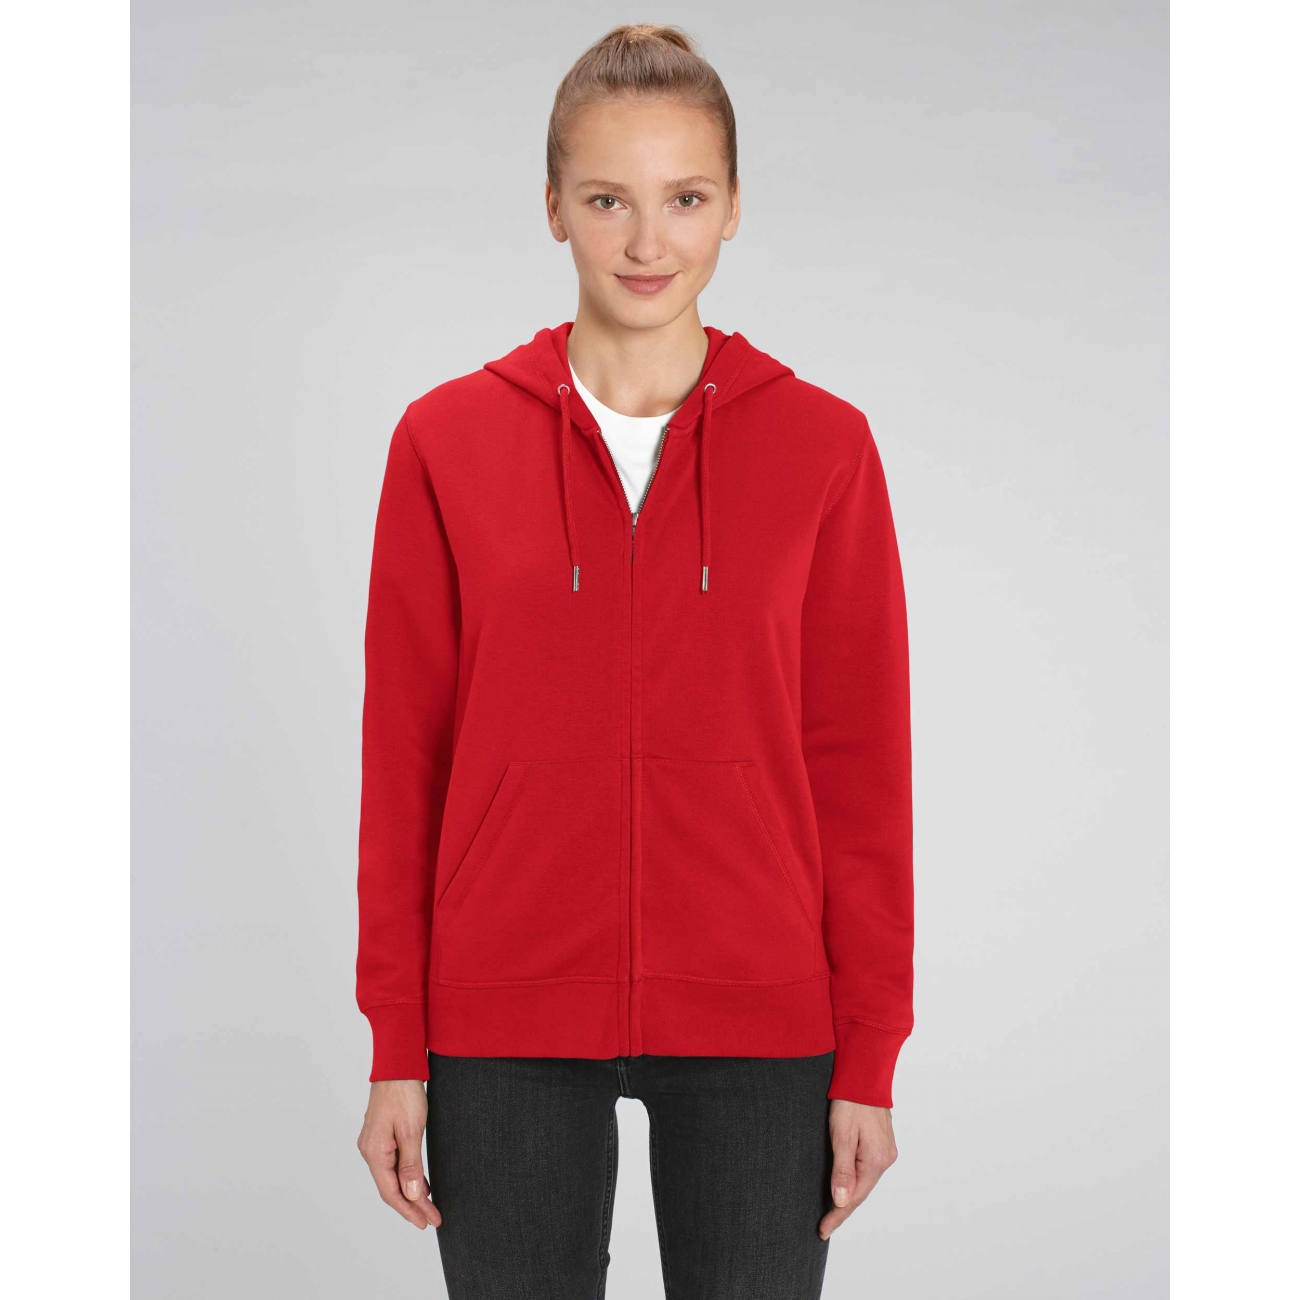 https://tee-shirt-bio.com/7794-thickbox_default/veste-a-capuche-zippee-legere-coton-bio-femme-rouge-connector.jpg